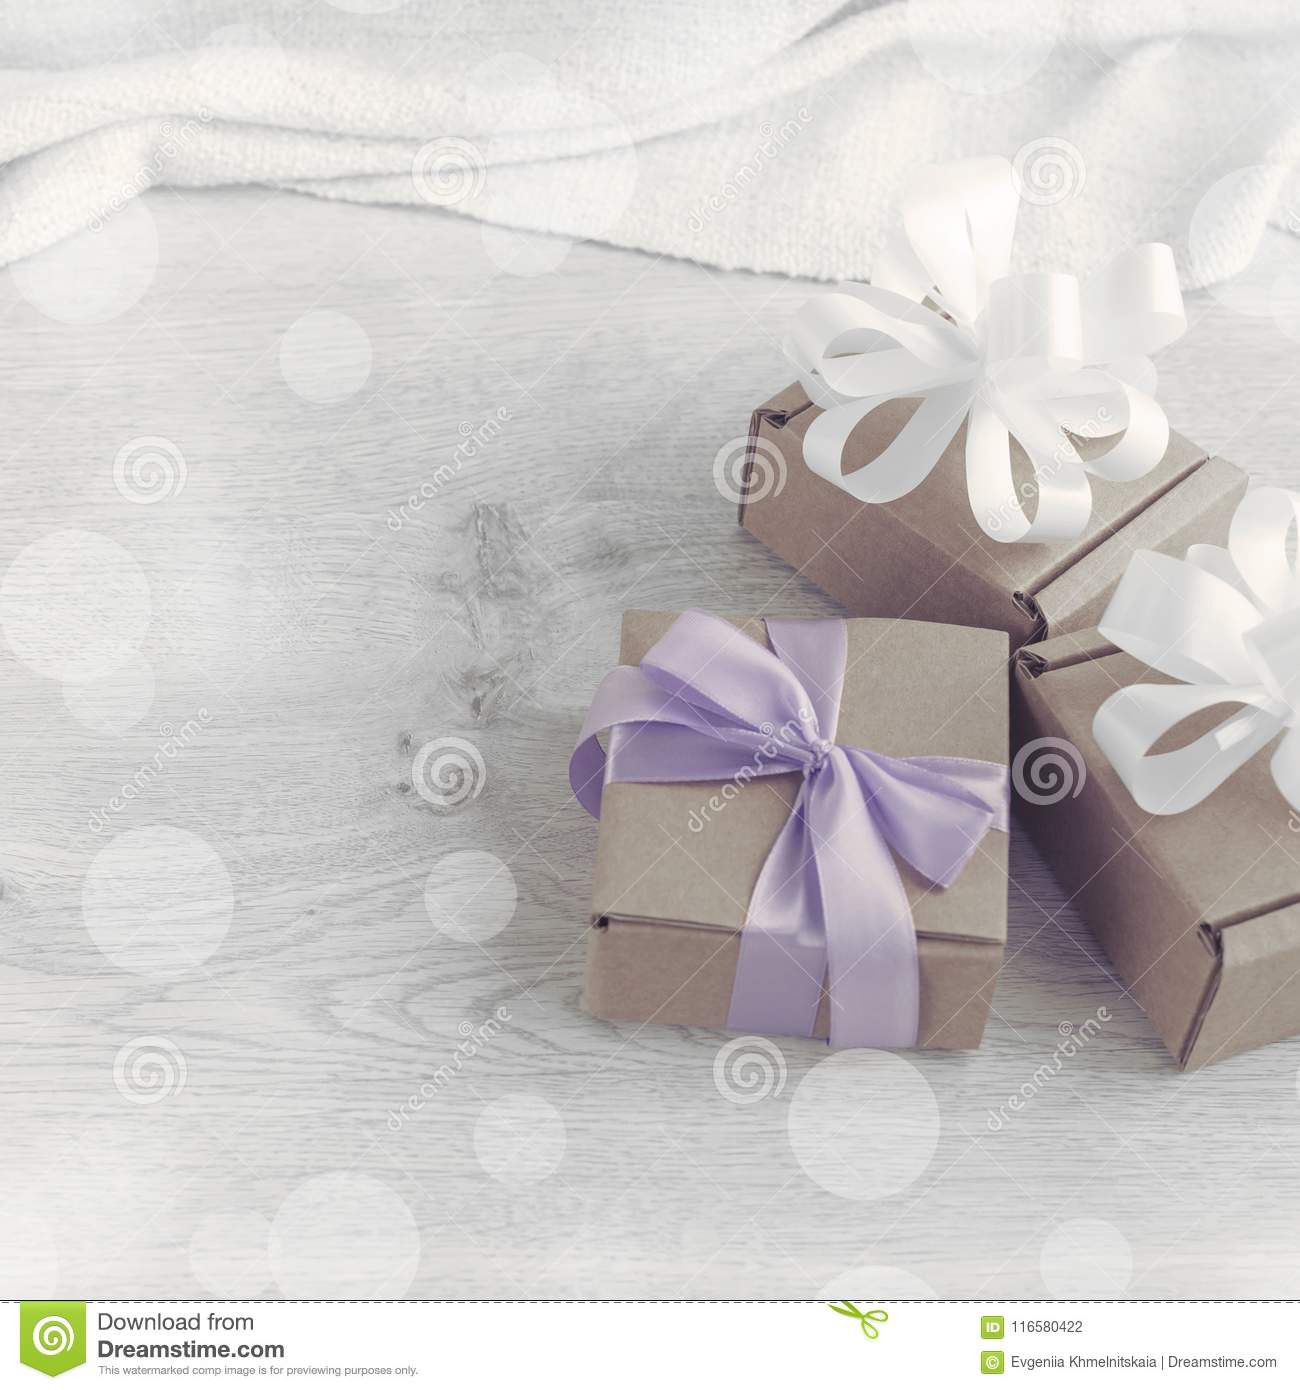 Decorative composition in retro style set of boxes with gifts.